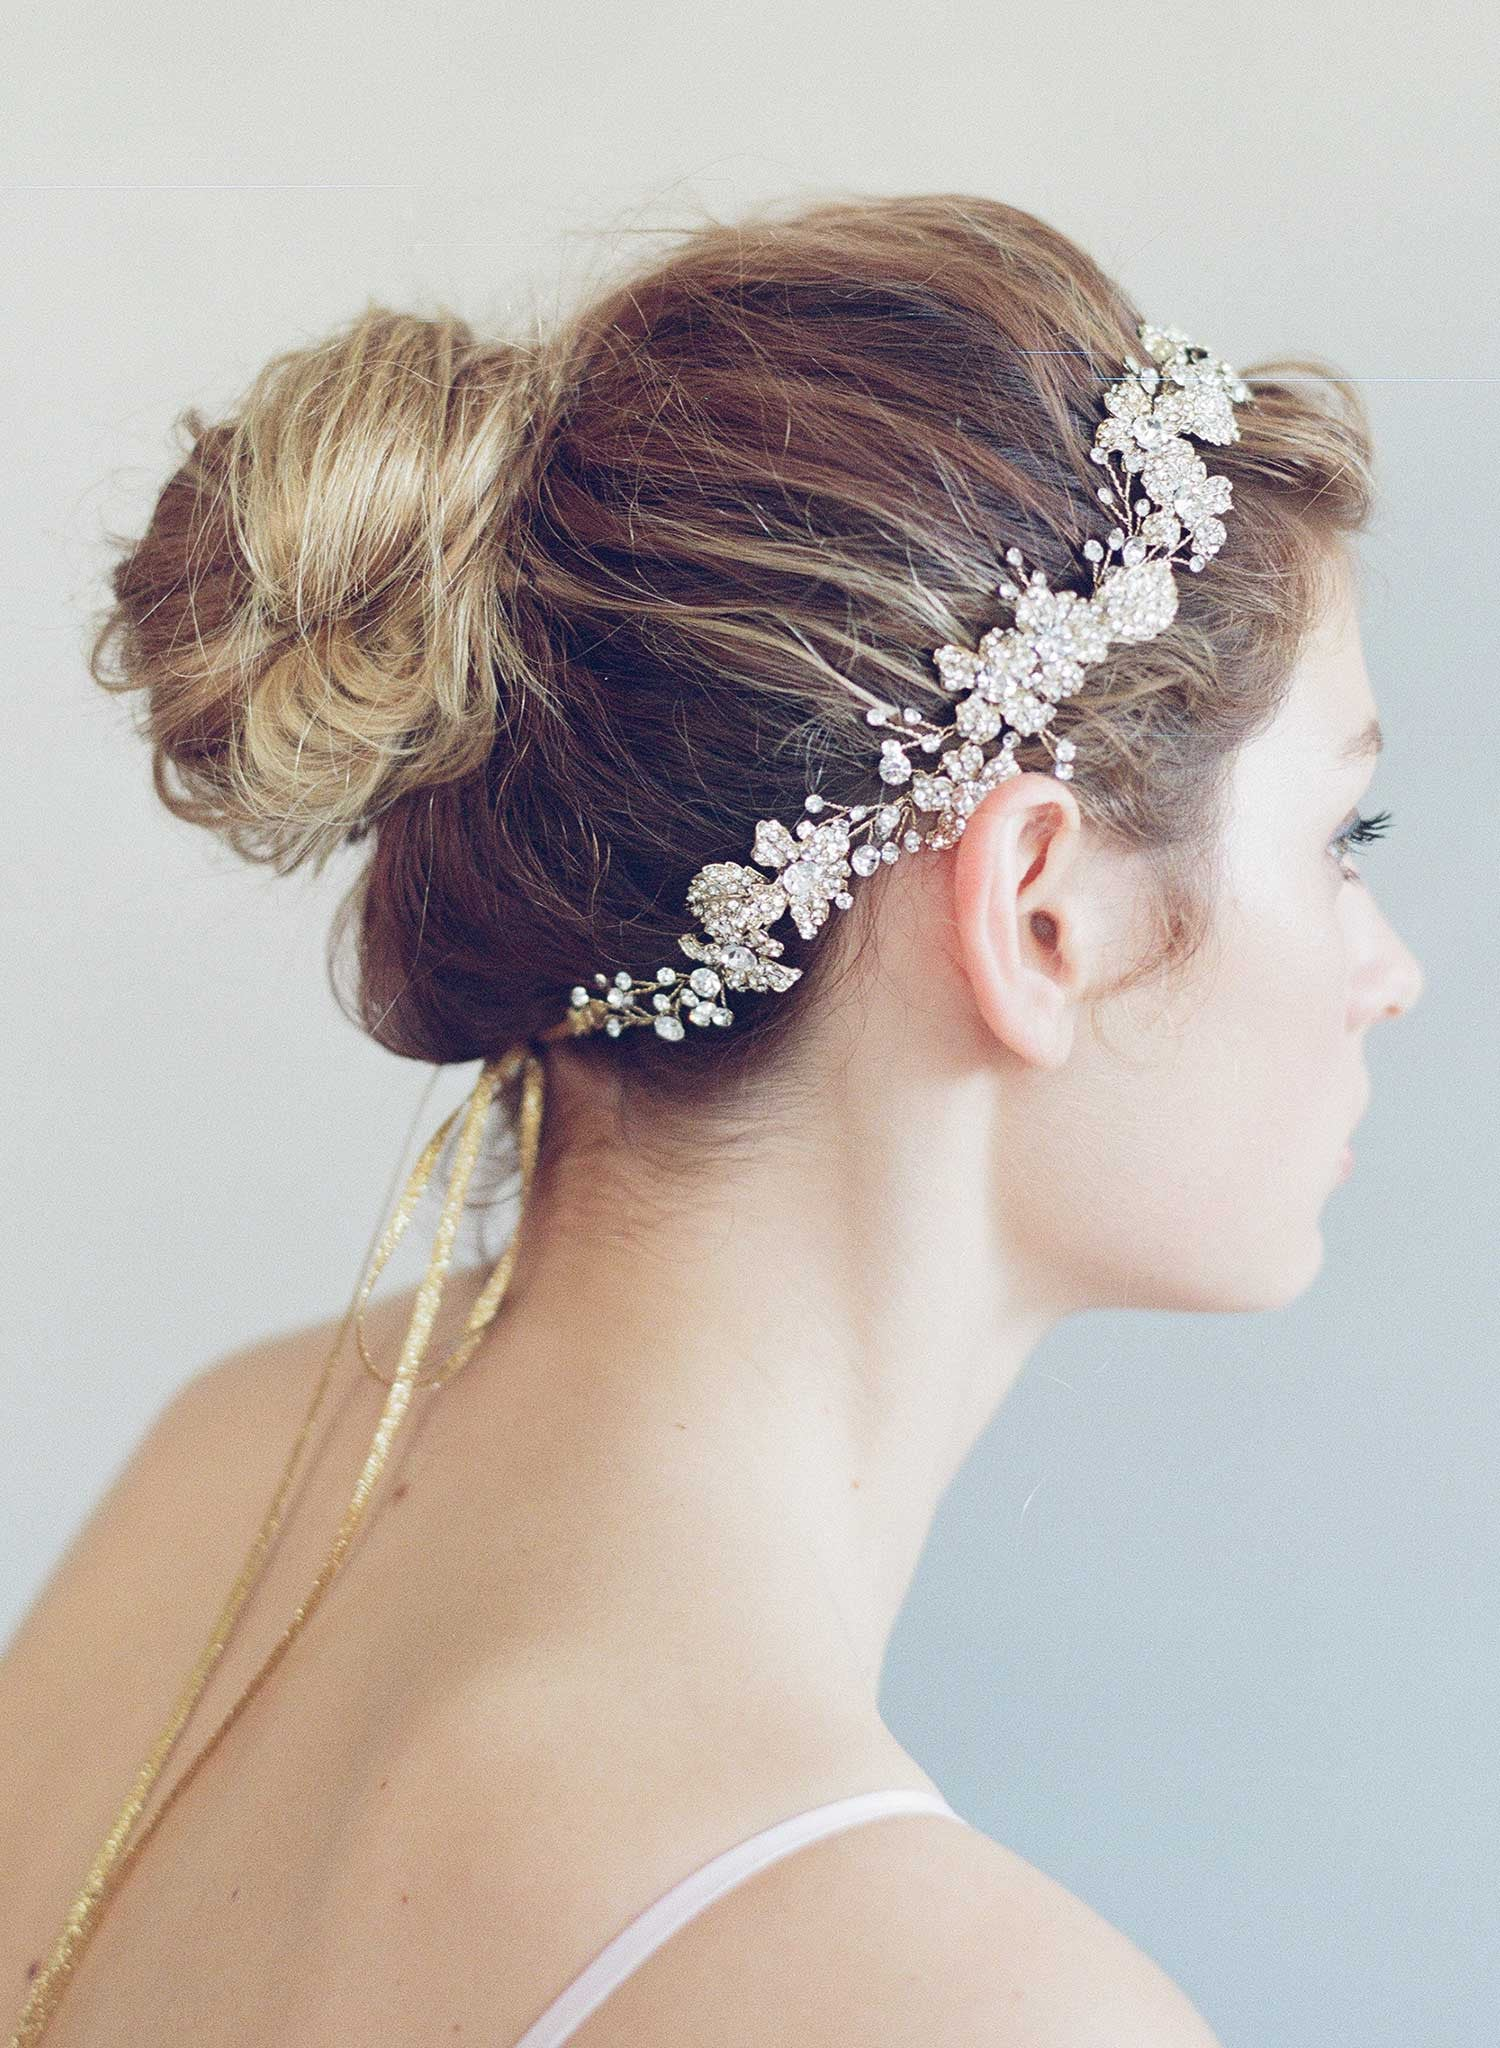 Crystal encrusted flower and leaf hair vine - Style #736